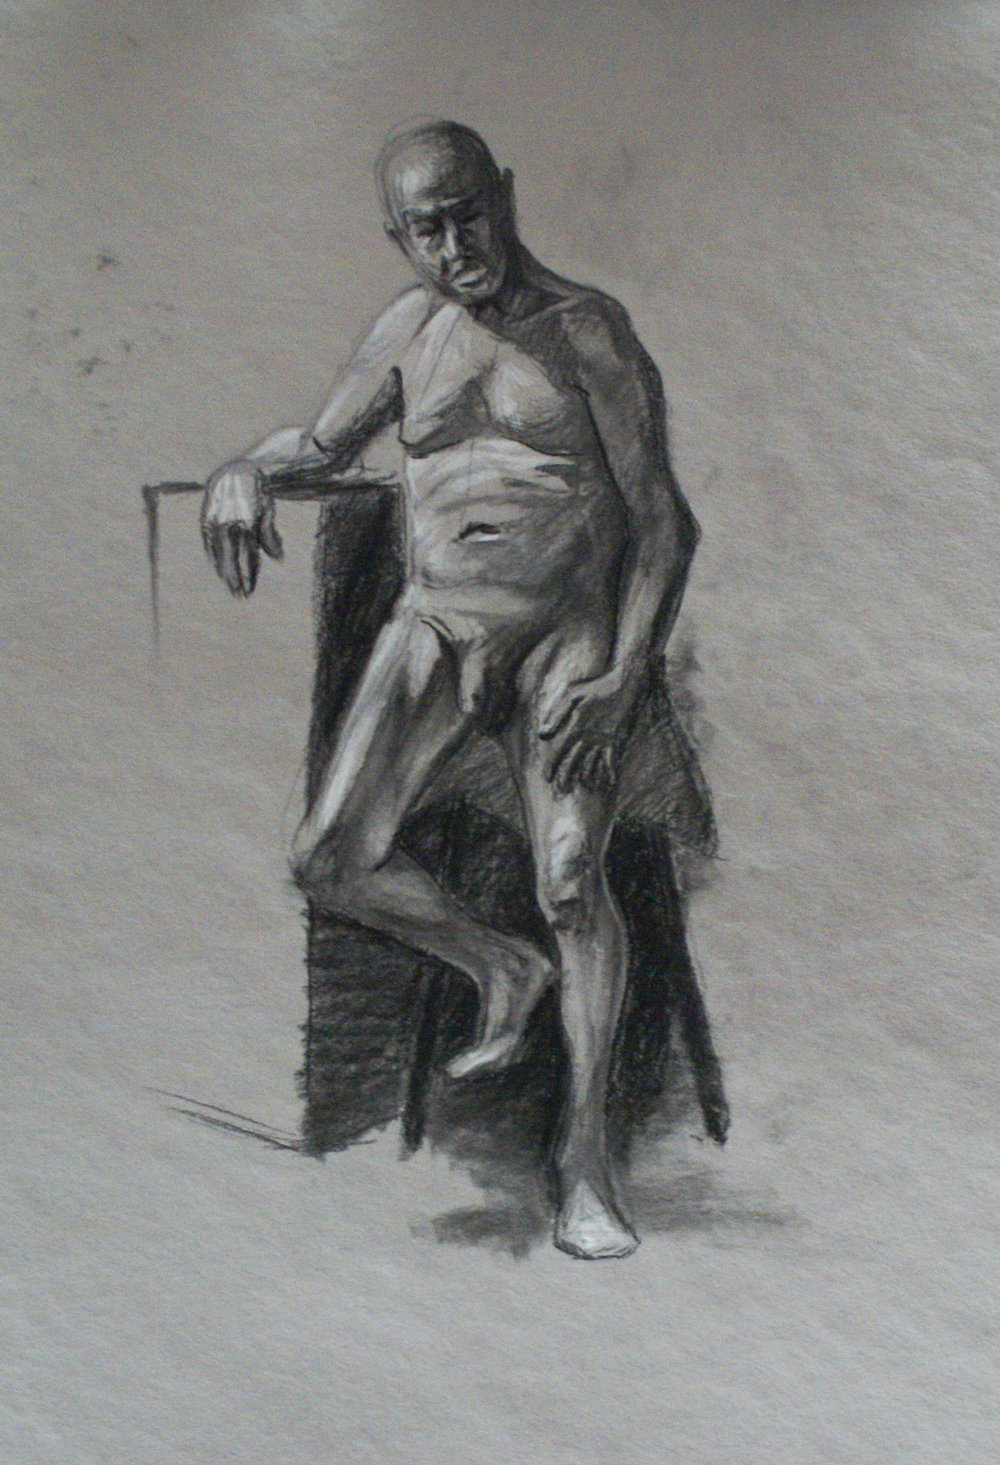 Orlando Rodriguez. Anatomy and Figure Drawing II. Charcoal on paper 18 x 24 in.